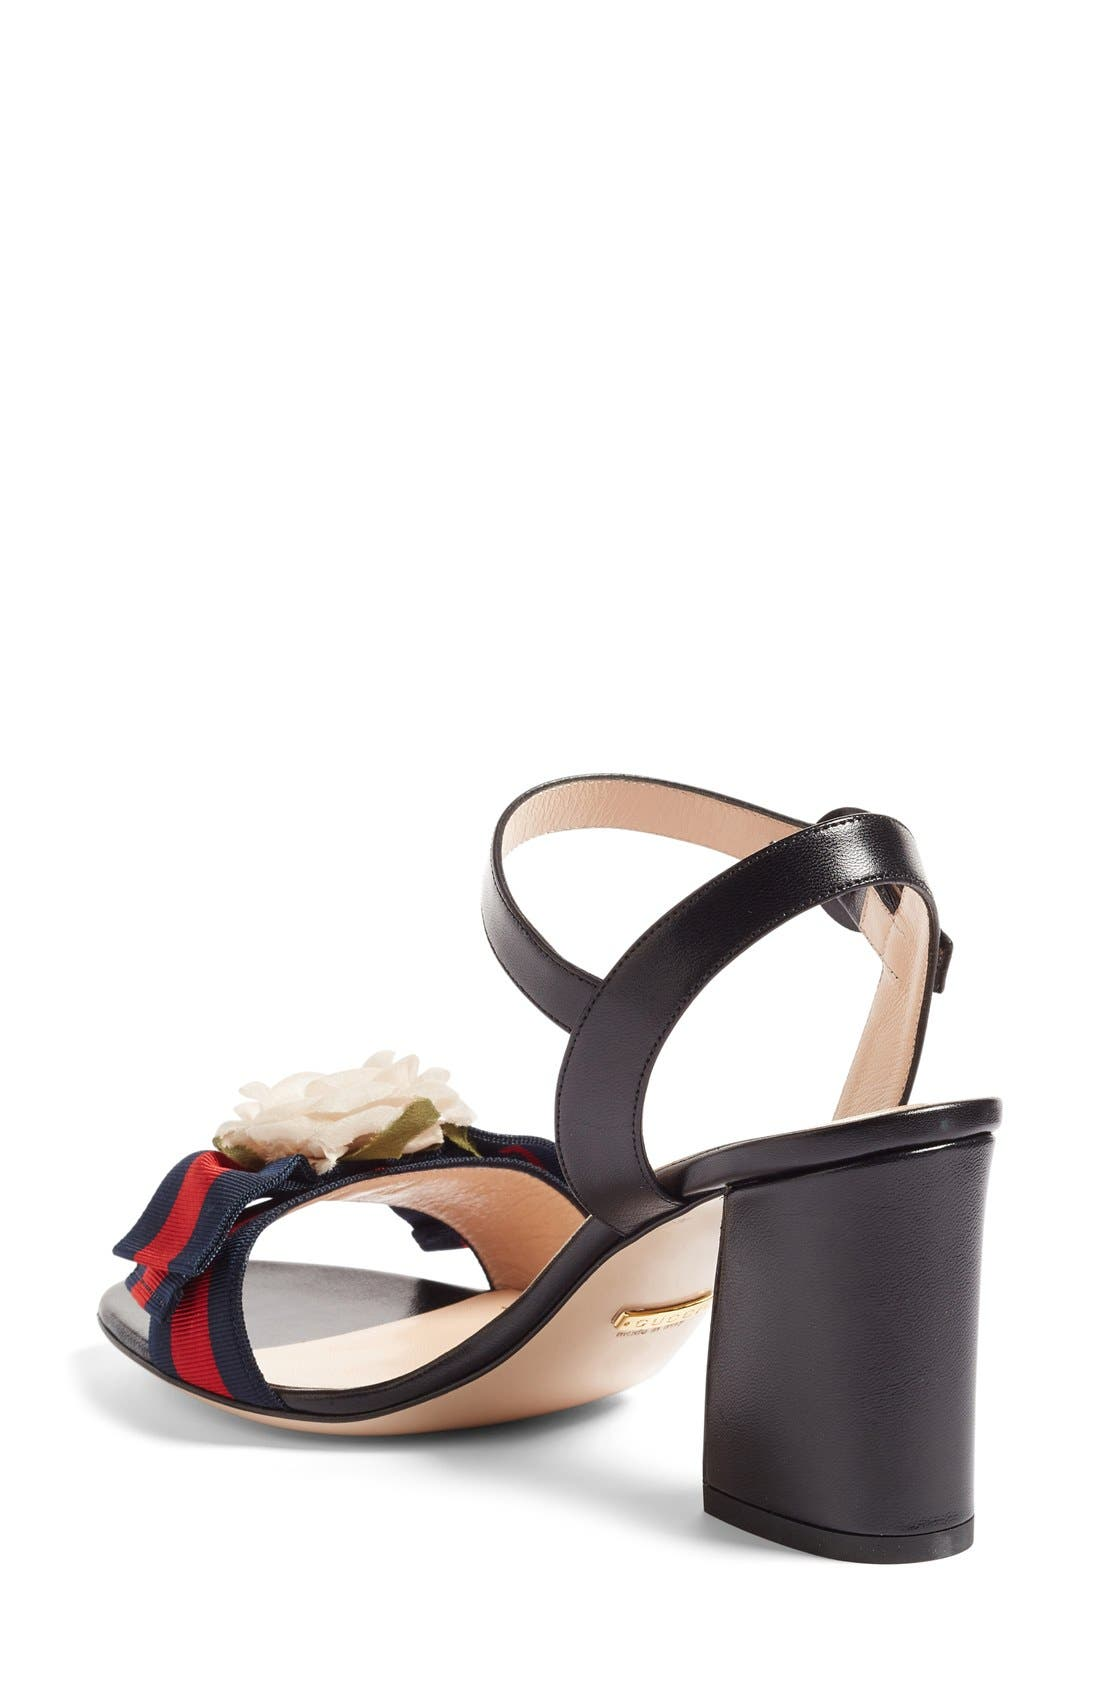 Cindi Quarter Strap Sandal,                             Alternate thumbnail 2, color,                             Black Leather